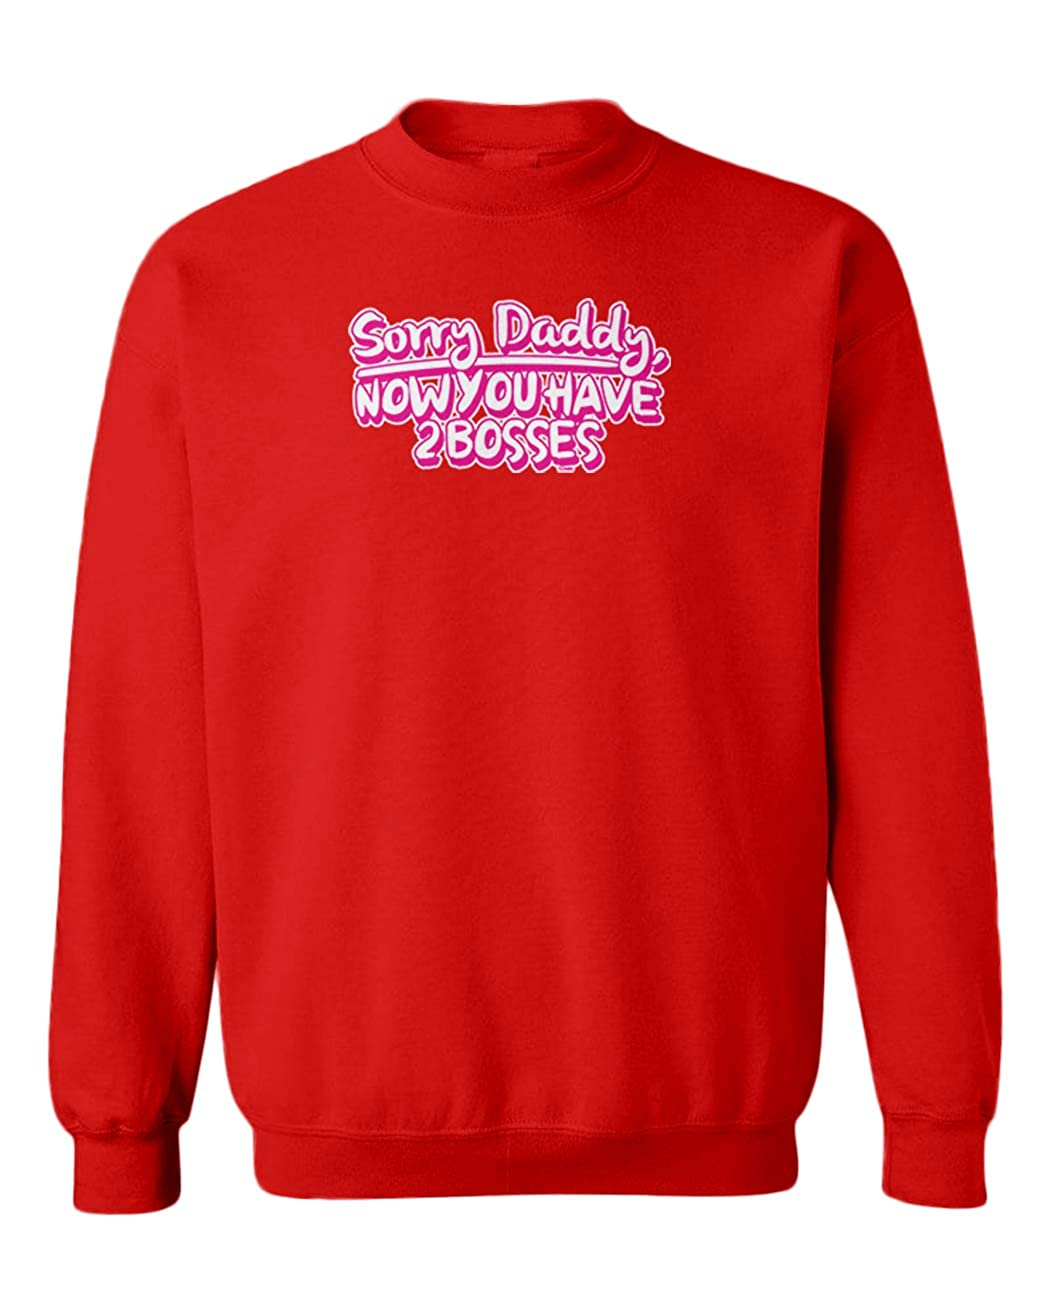 Now You Have 2 Bosses Youth Fleece Crewneck Sweater Sorry Daddy